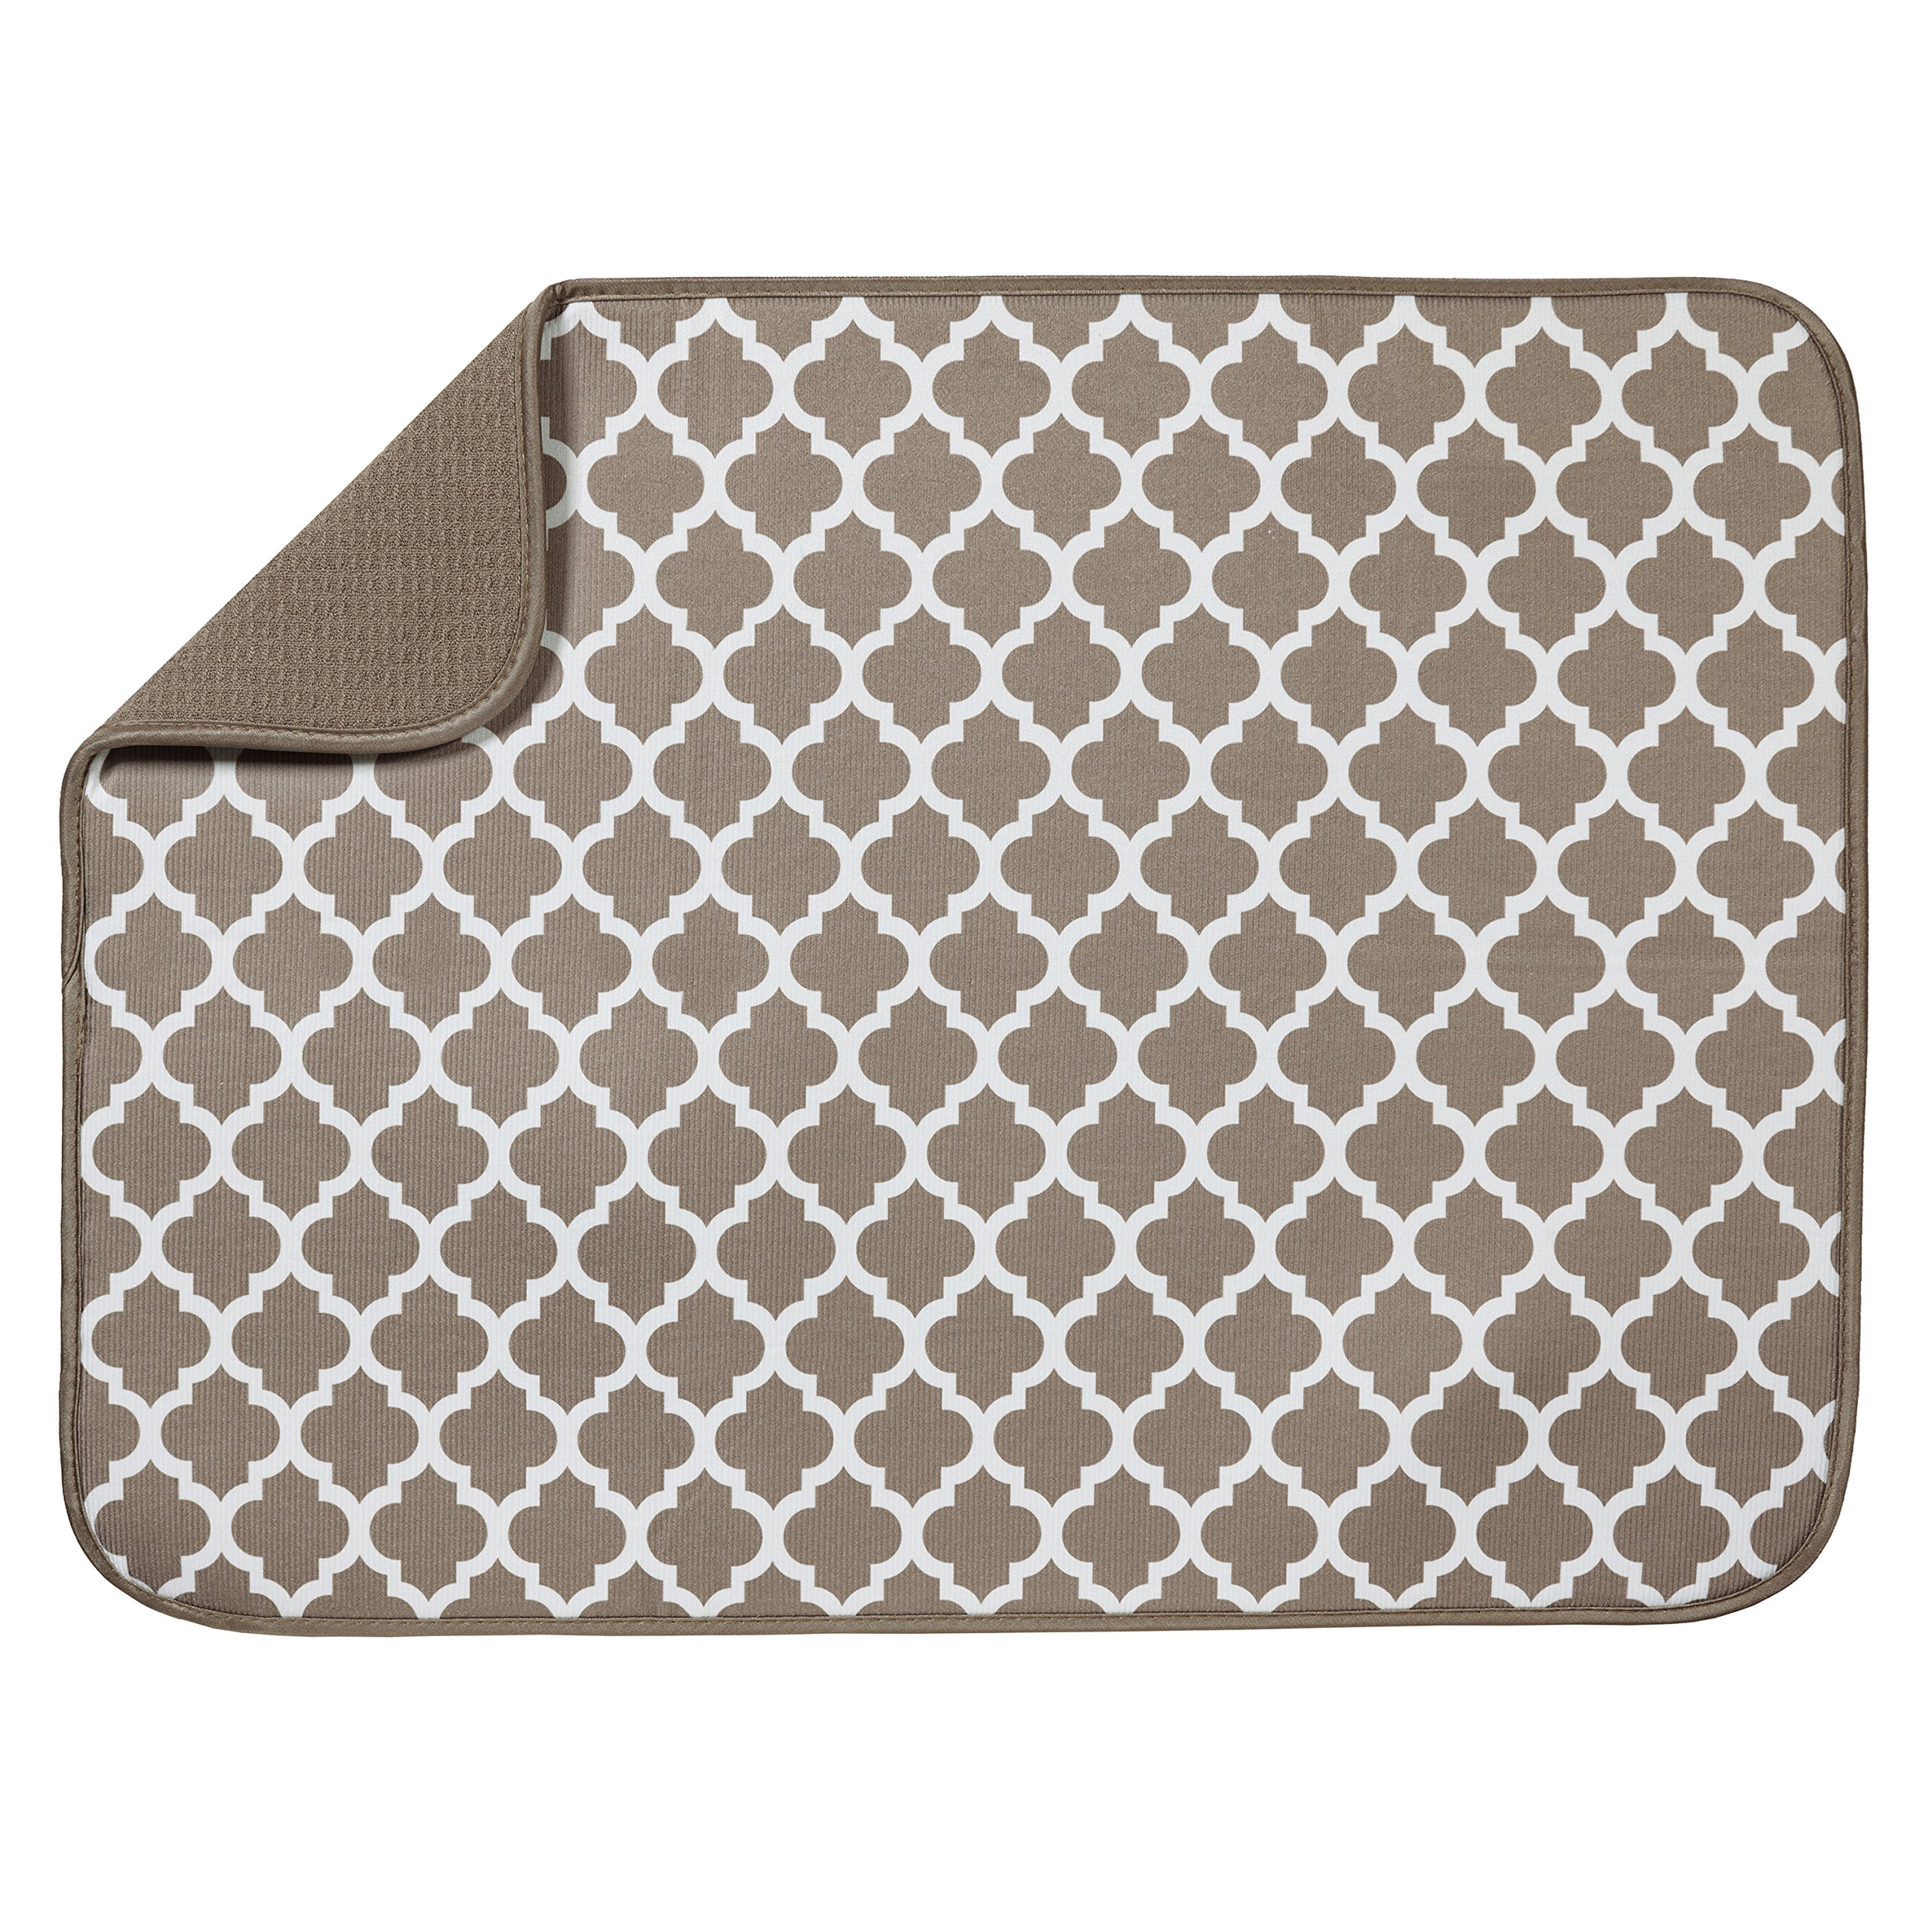 S&T XL Microfiber Dish Drying Mat, 18'' x 24'', Taupe Trellis by STS